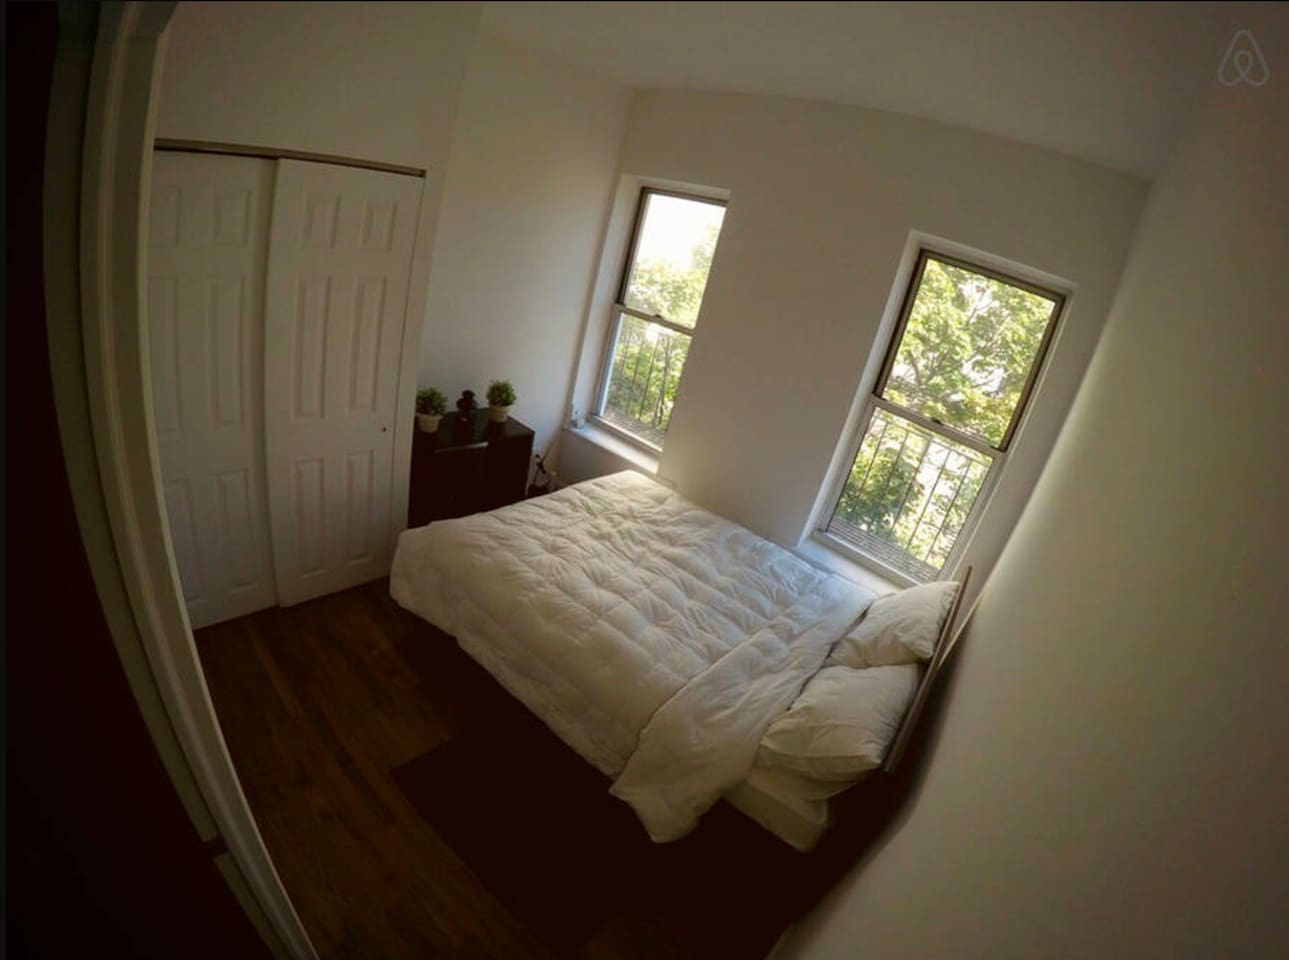 Lot of light in the bedroom.